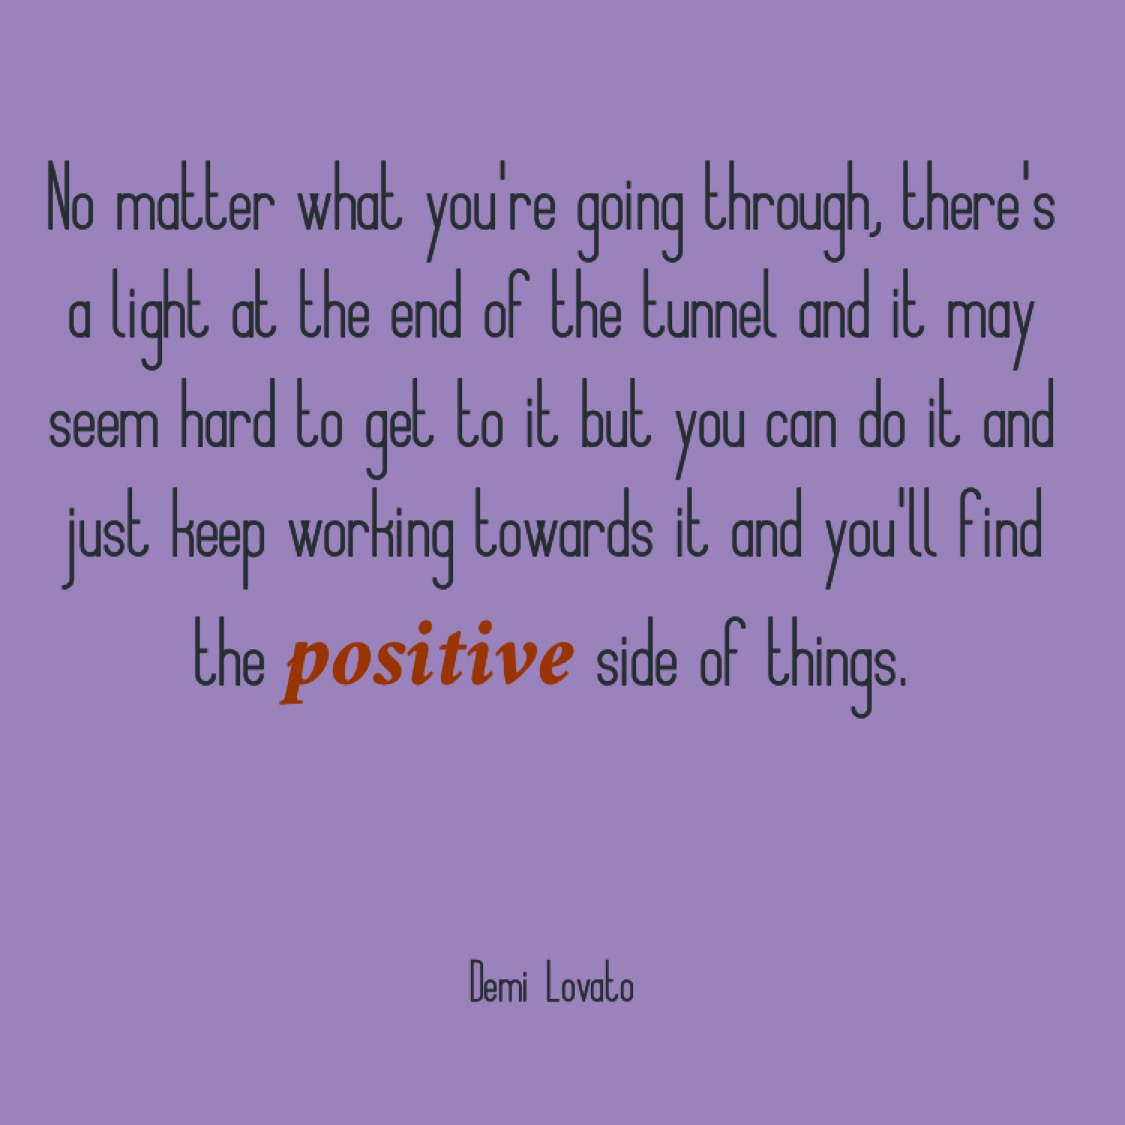 Quotes From Positive Week 3 Inspiring Thru Positivity